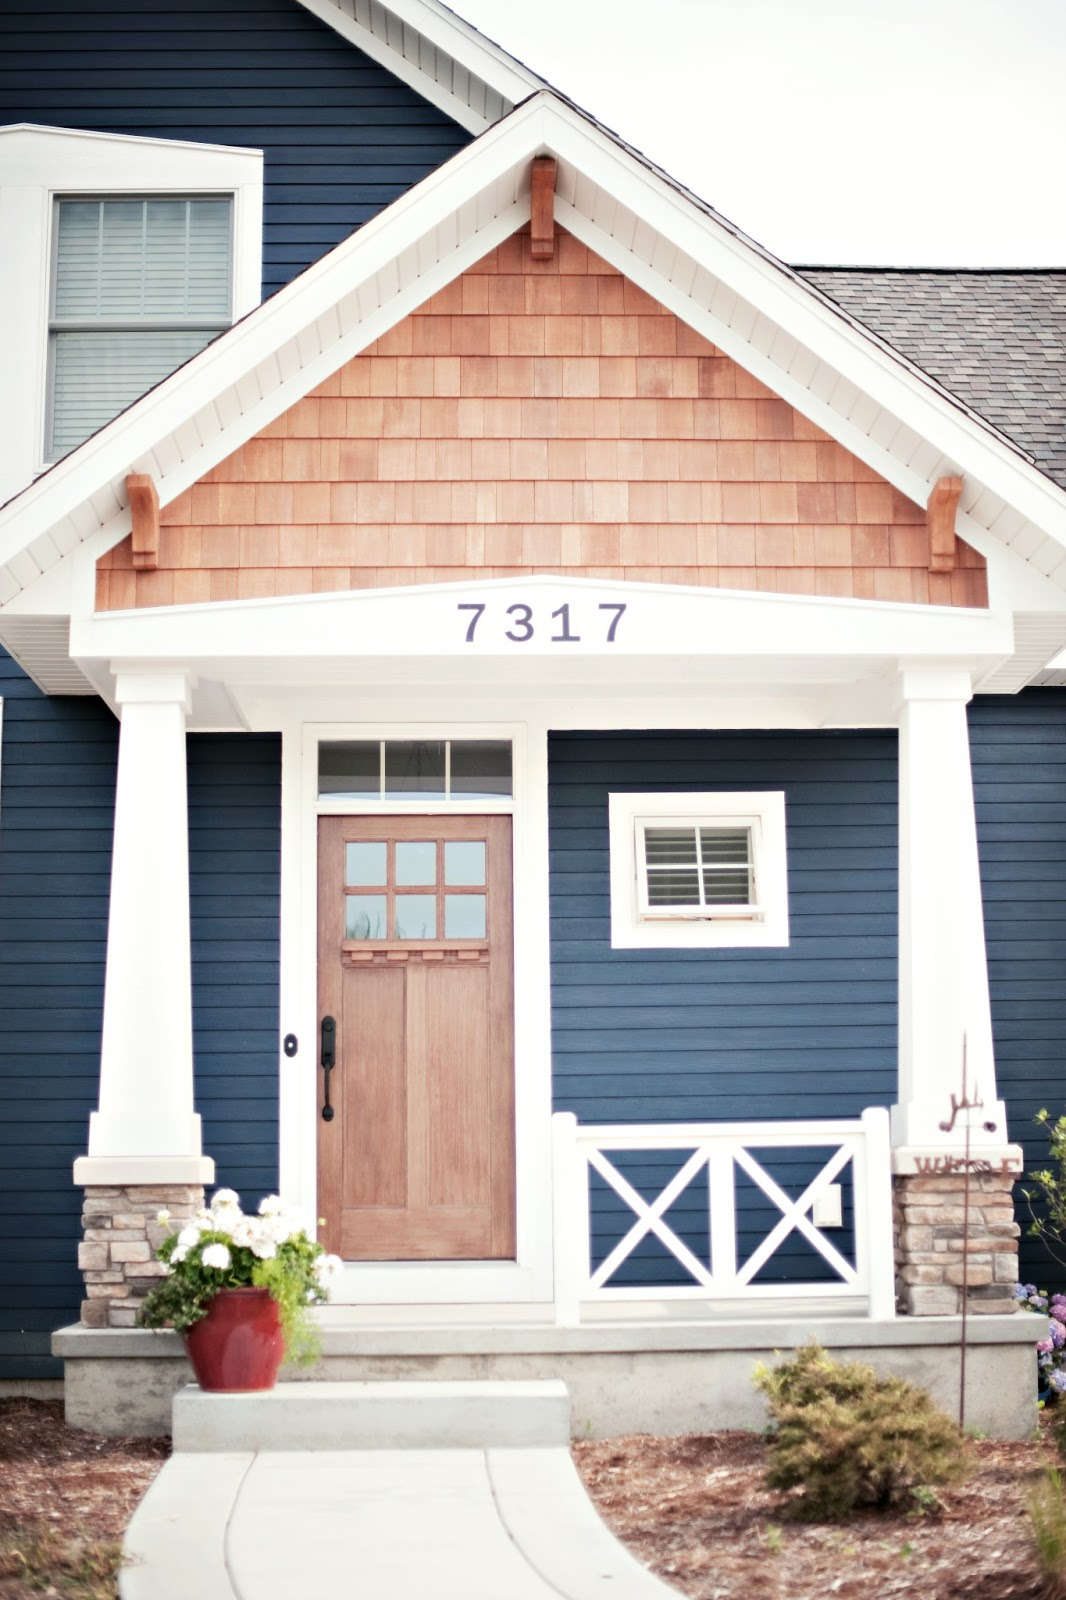 Lisa mende design best navy blue paint colors 8 of my favs - Exterior black paint ideas ...